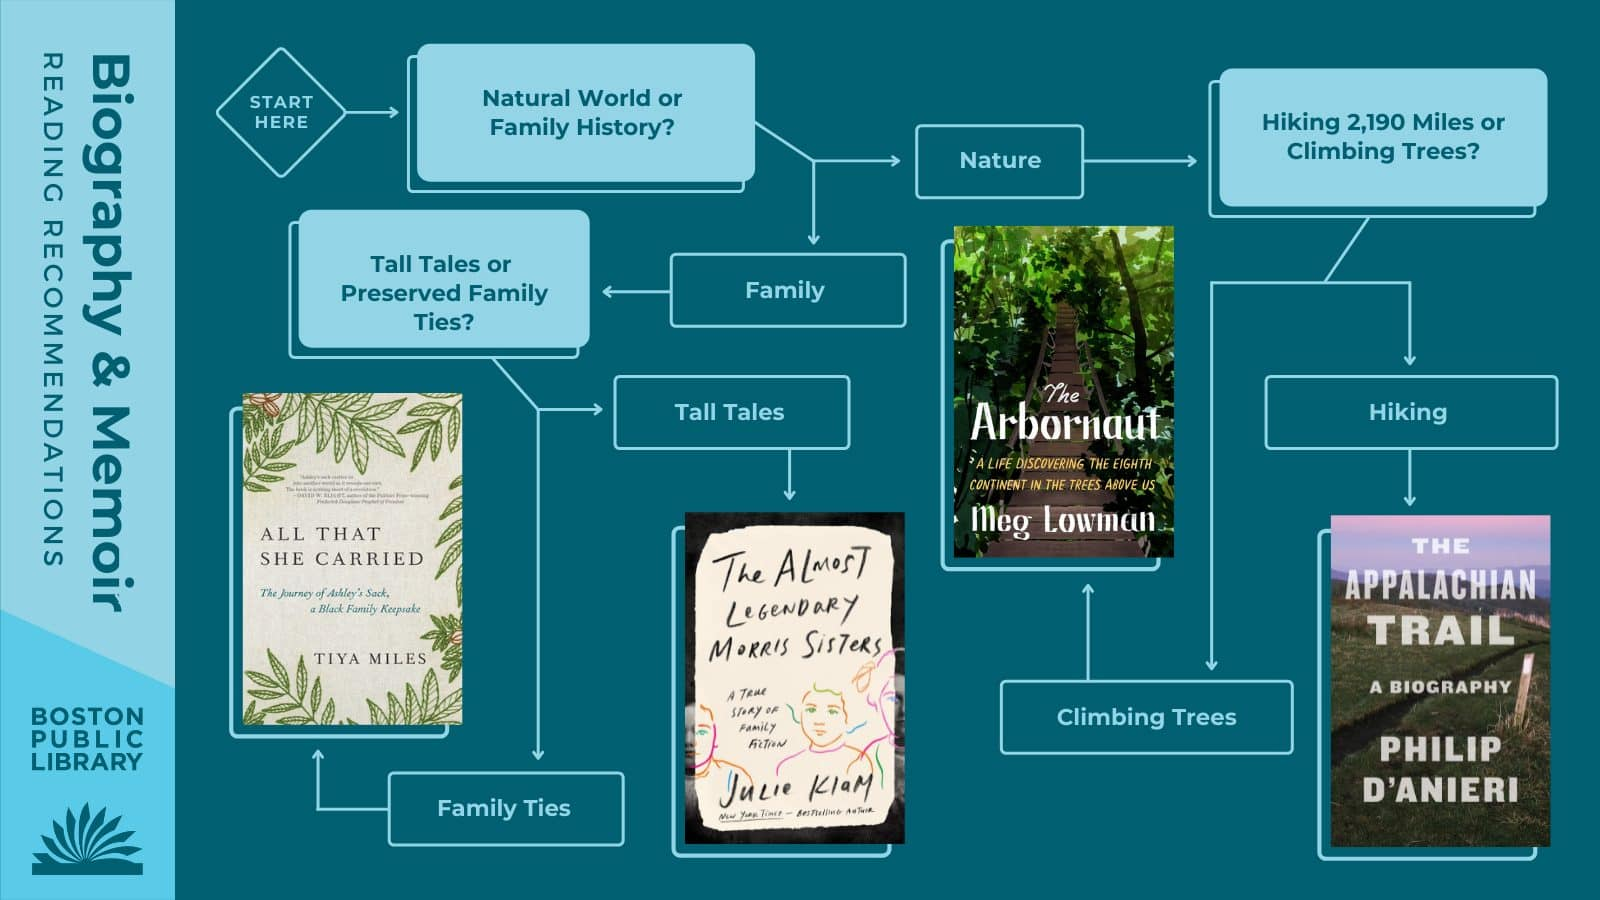 Q1: Natural World or Family History? Natural World → Q2: Hiking 2,190 Miles or Climbing Trees? → Hiking: The Appalachian Trail by Philip D'Anieri | Climbing Trees: The Arbornaut by Meg Lowman | → Family History → Q3: Tall Tales or Preserved Family Ties? Tall Tales → The Almost Legendary Morris Sisters by Julie Klam | Preserved Family Ties: All That She Carried by Tiya Miles.